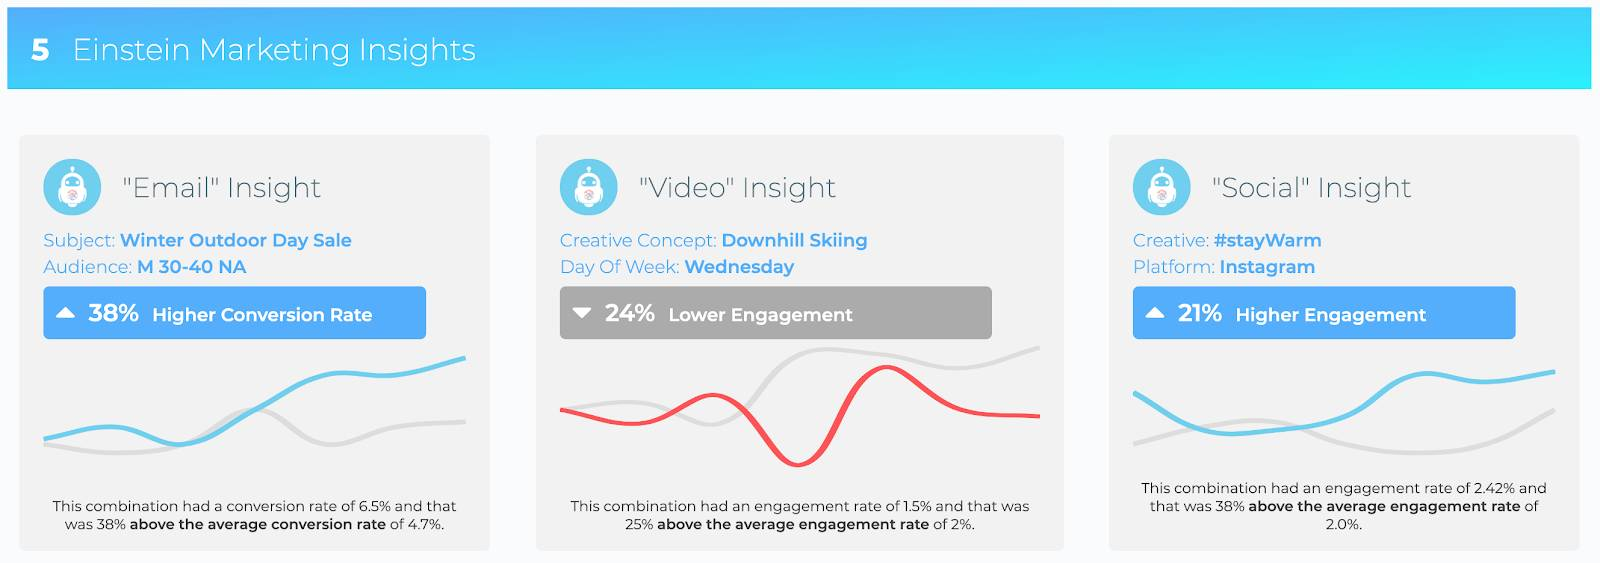 Einstein Marketing Insights Dashboard in Datorama showing insights for email, video, and social.